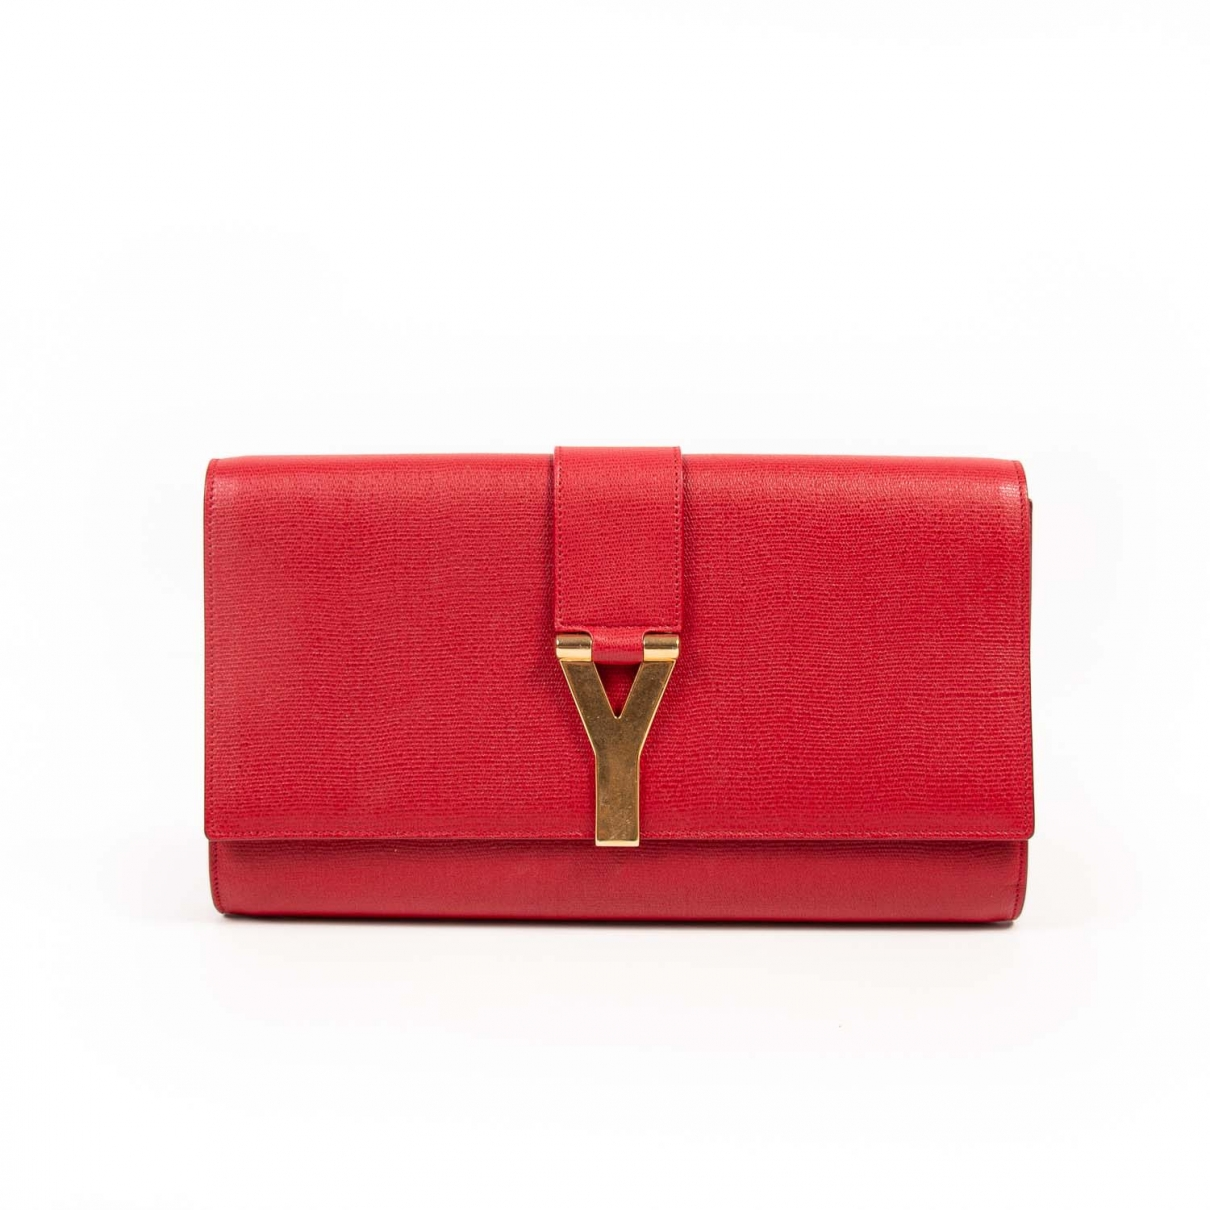 Saint Laurent Chyc Red Leather Clutch bag for Women \N